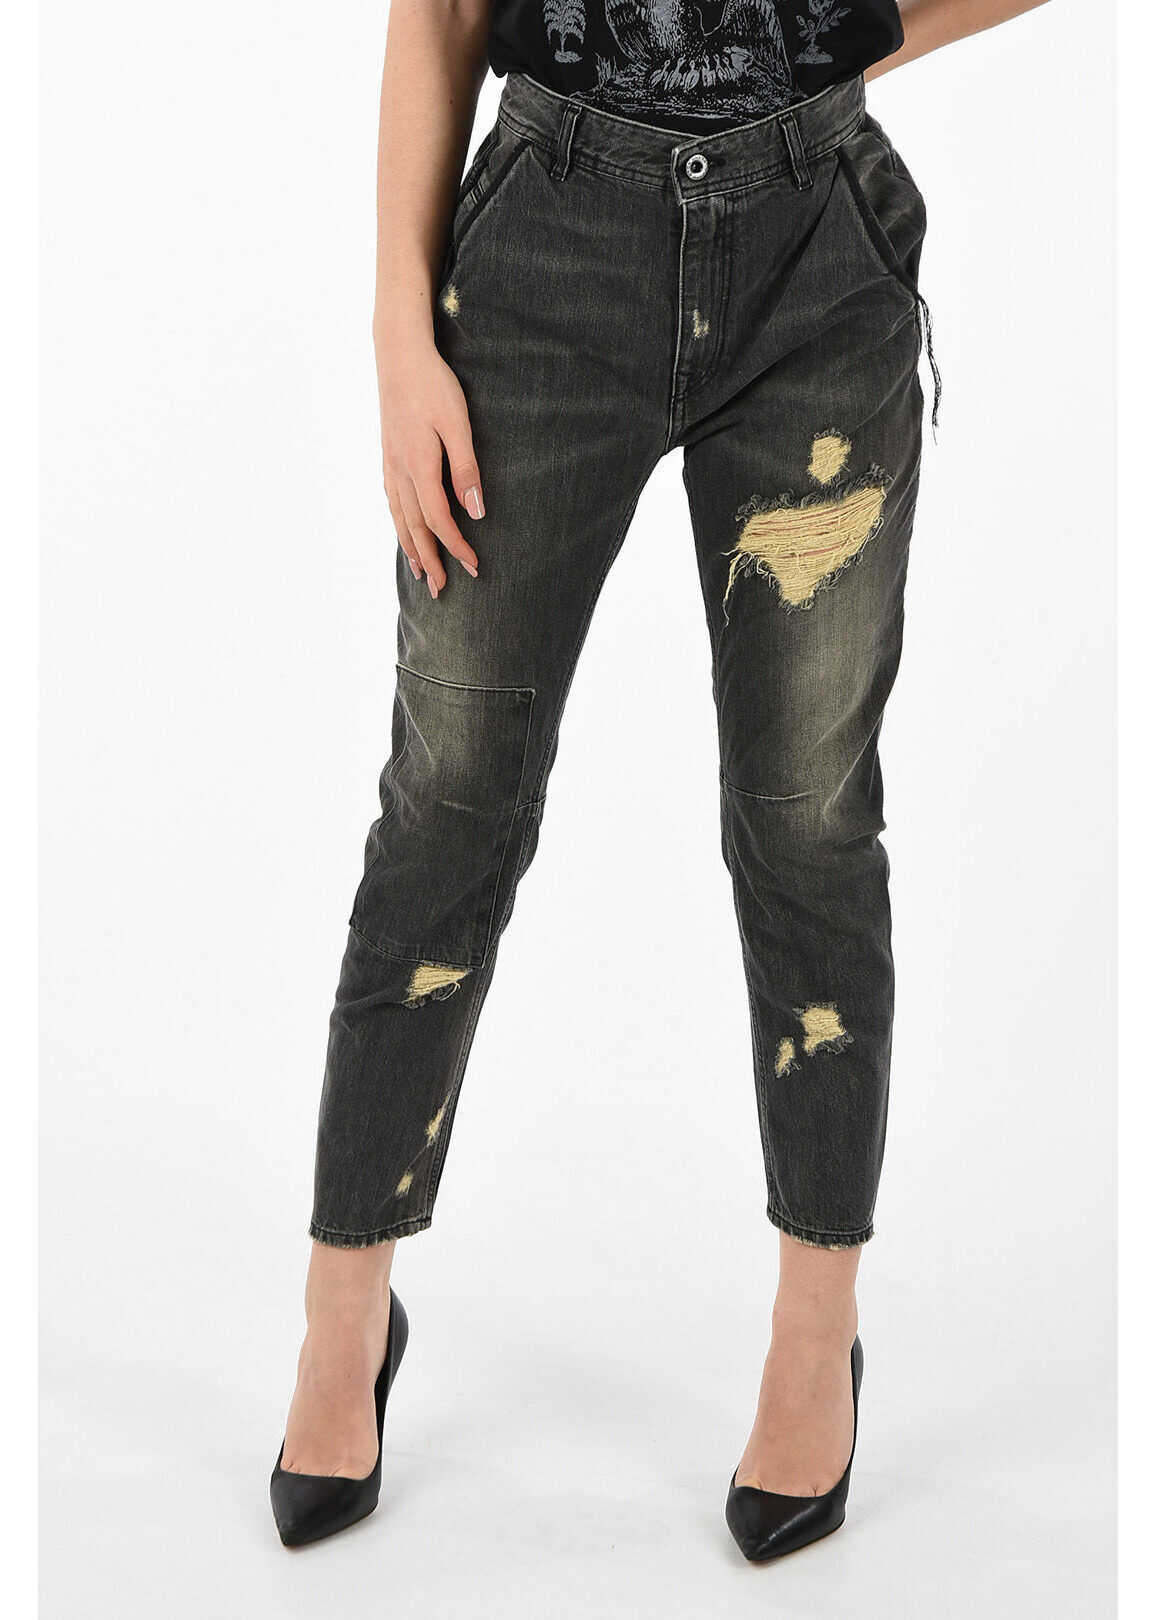 Diesel BLACK GOLD 14 cm stone washed CARROT distressed jeans GRAY